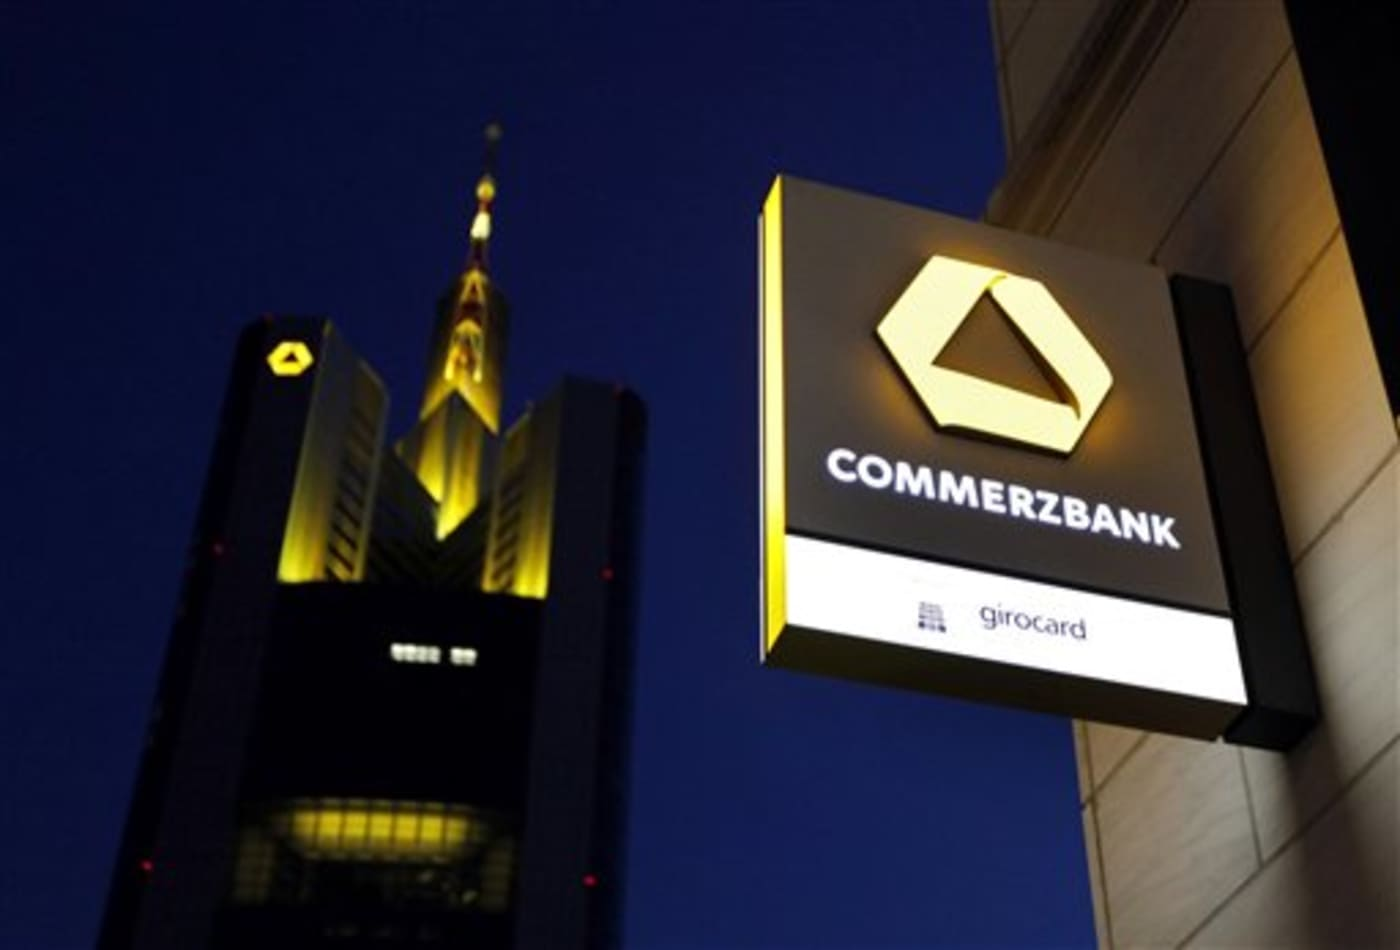 germany earns commerzbank--1473712278_v2.jpg